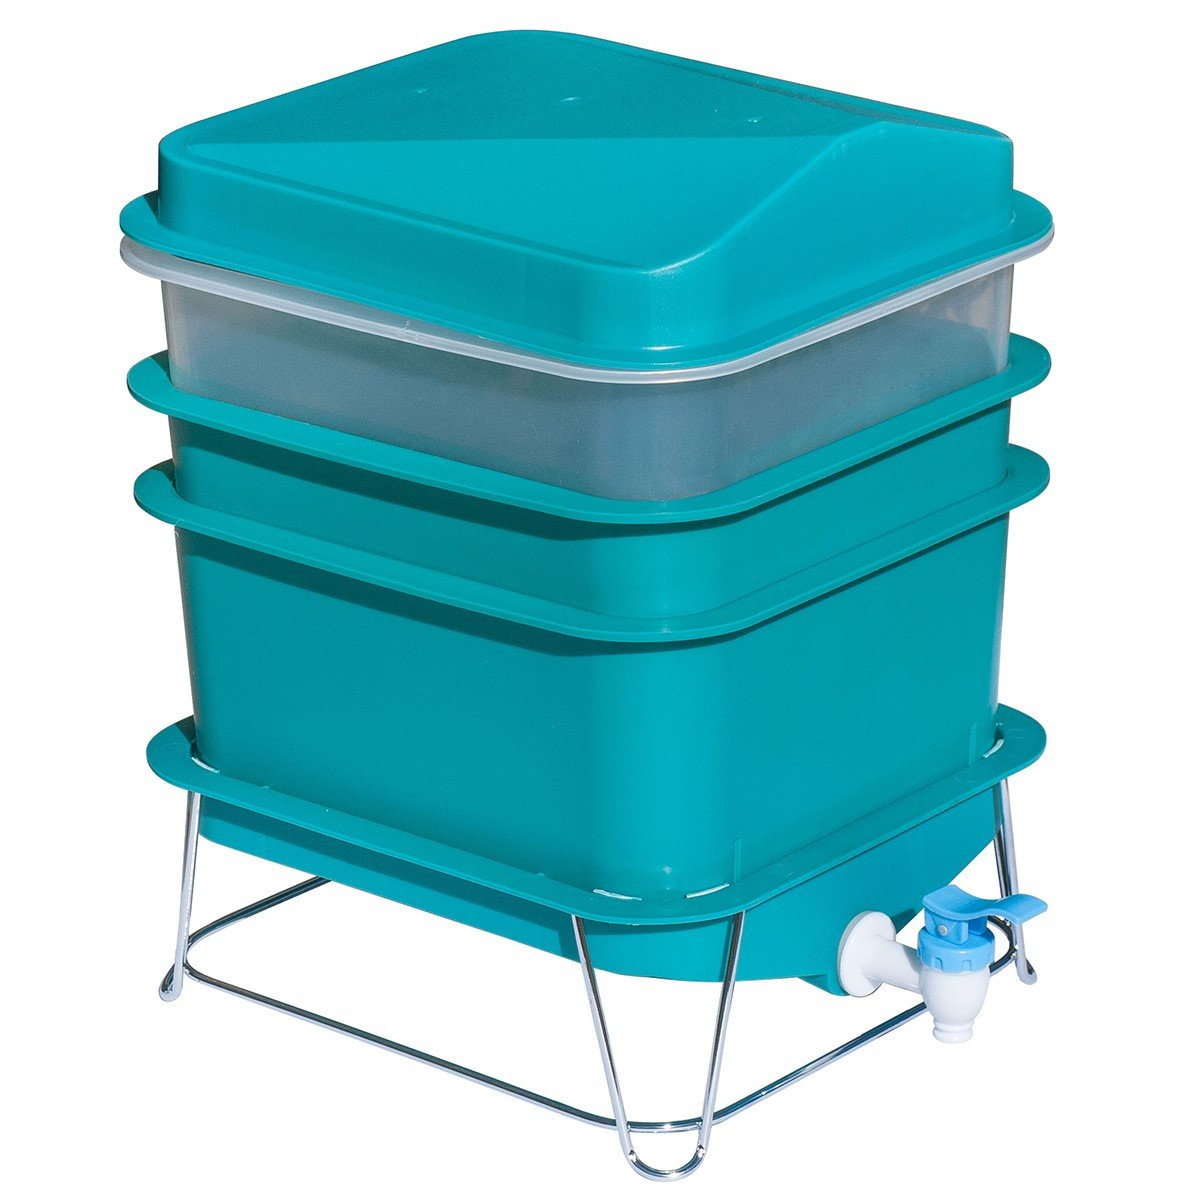 4-Tray Worm Factory Farm Compost Small Compact Bin Set by Quest (Image #1)